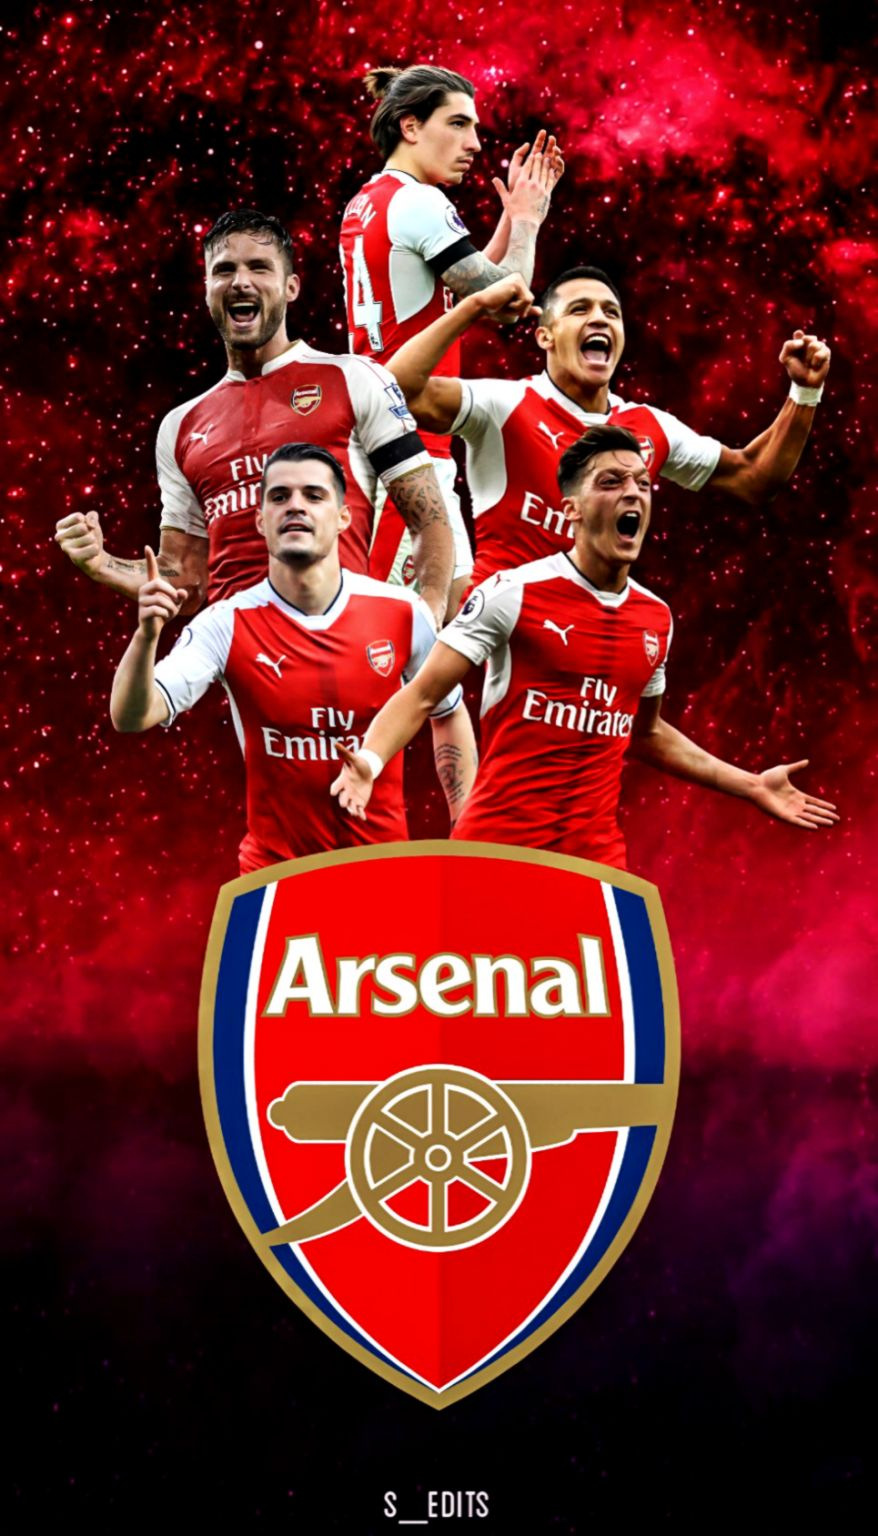 Arsenal Fc Wallpaper Pack Wallpapers